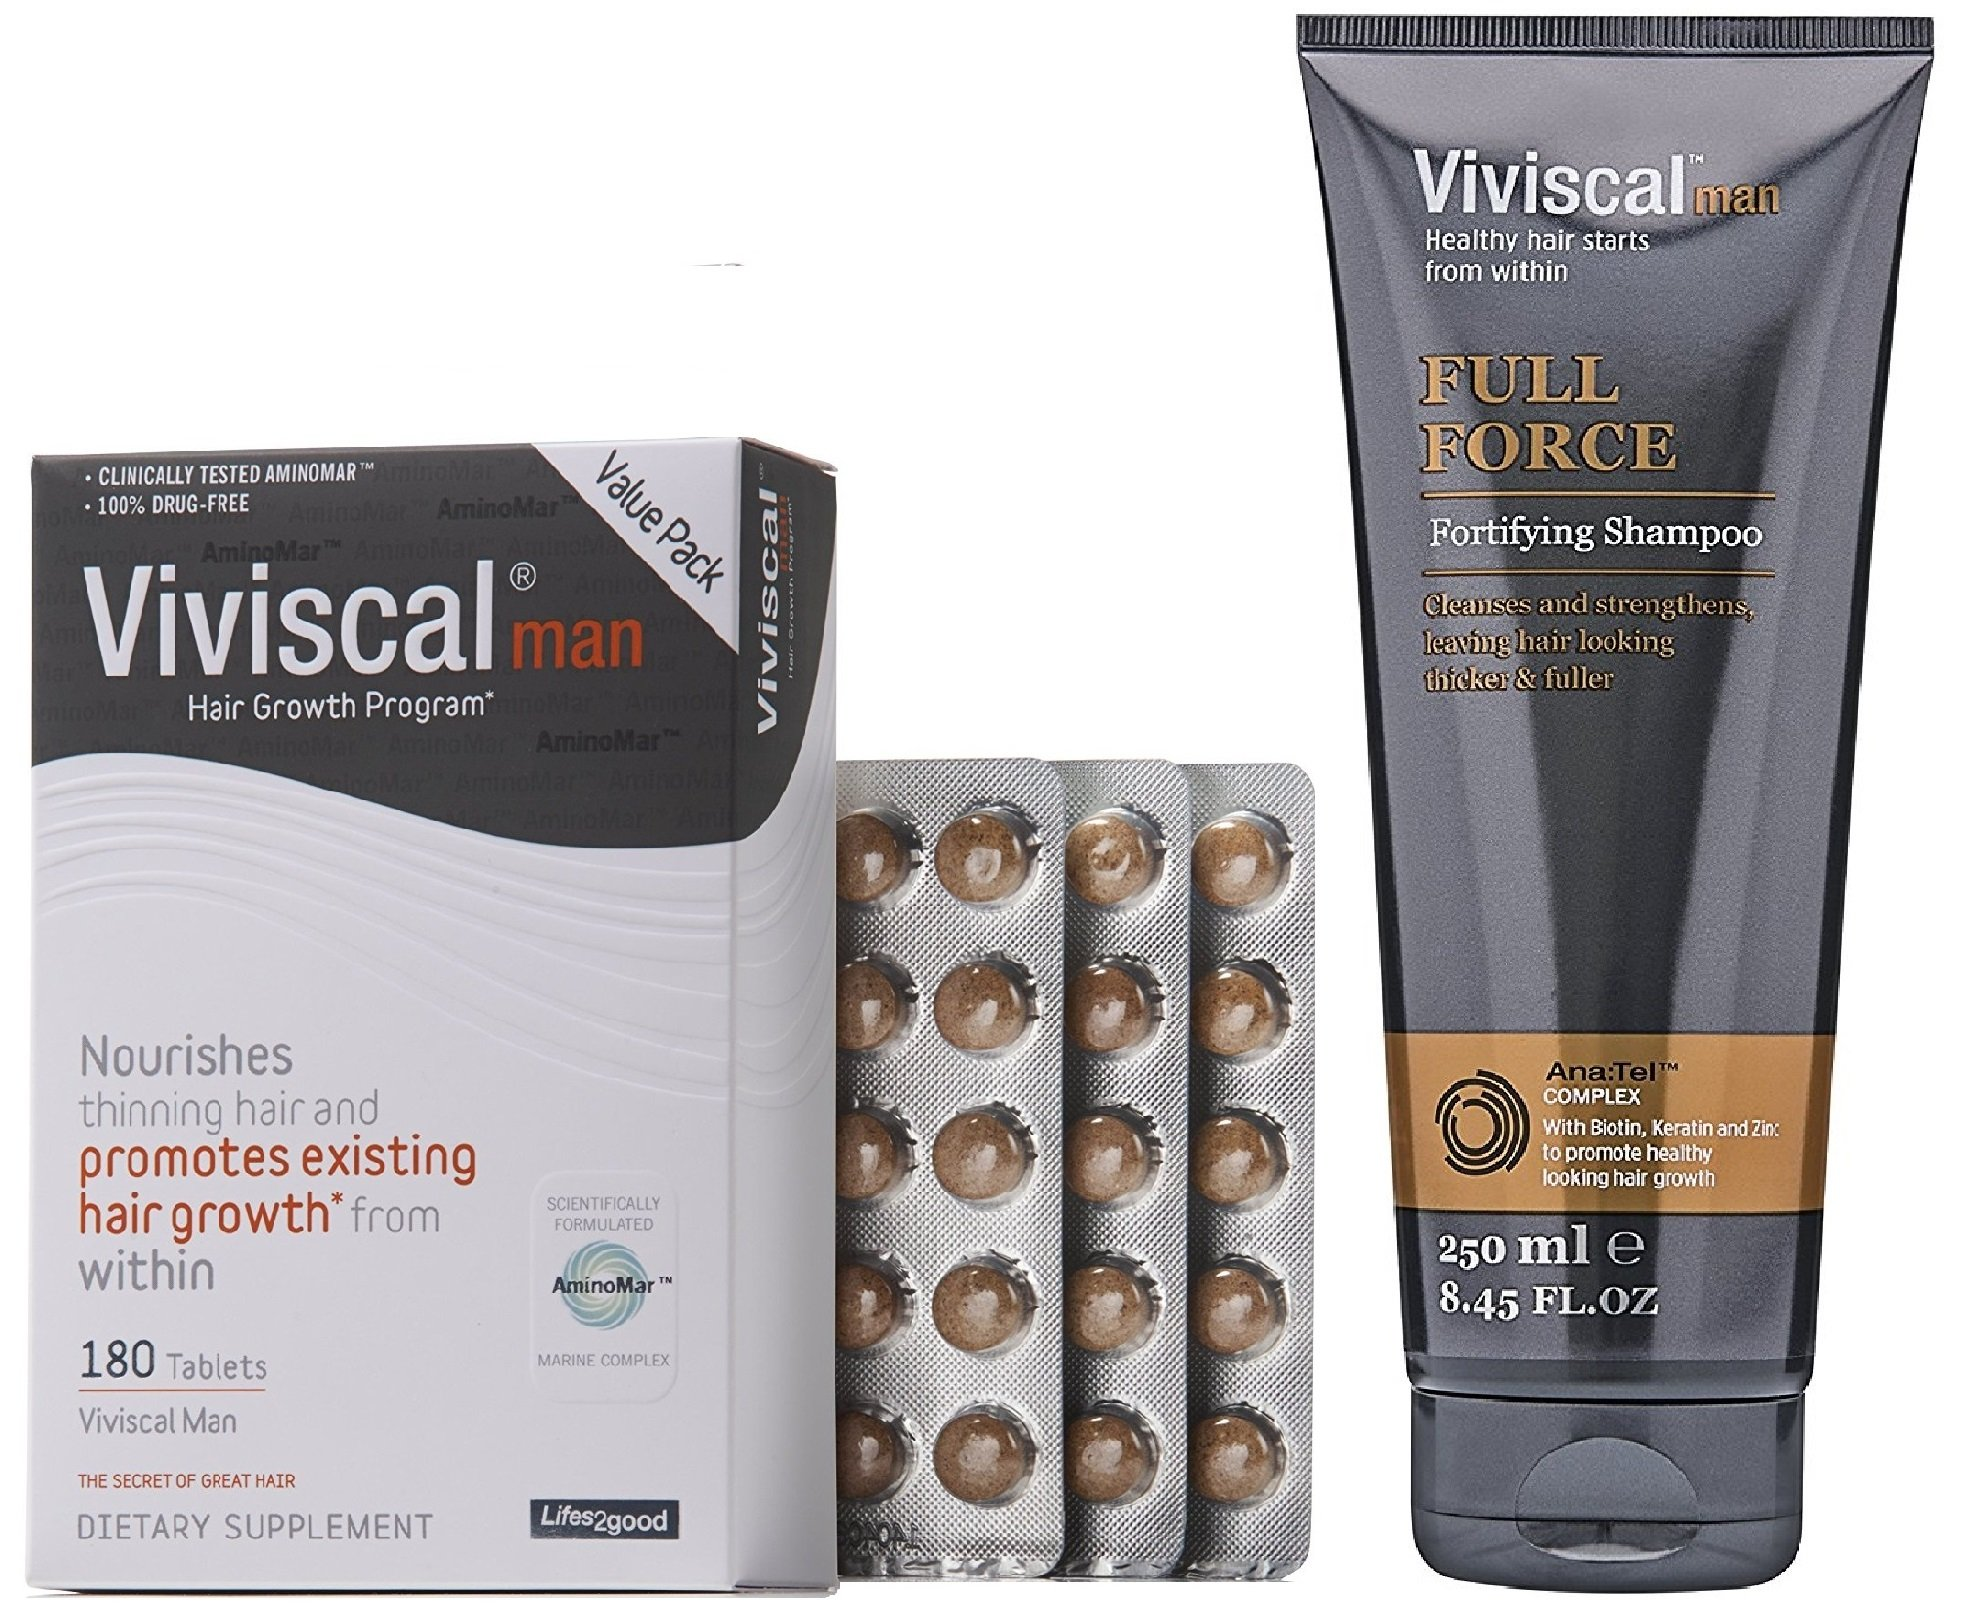 Viviscal Man Hair Growth Program, 3 Month Supply with Fortifying Shampoo